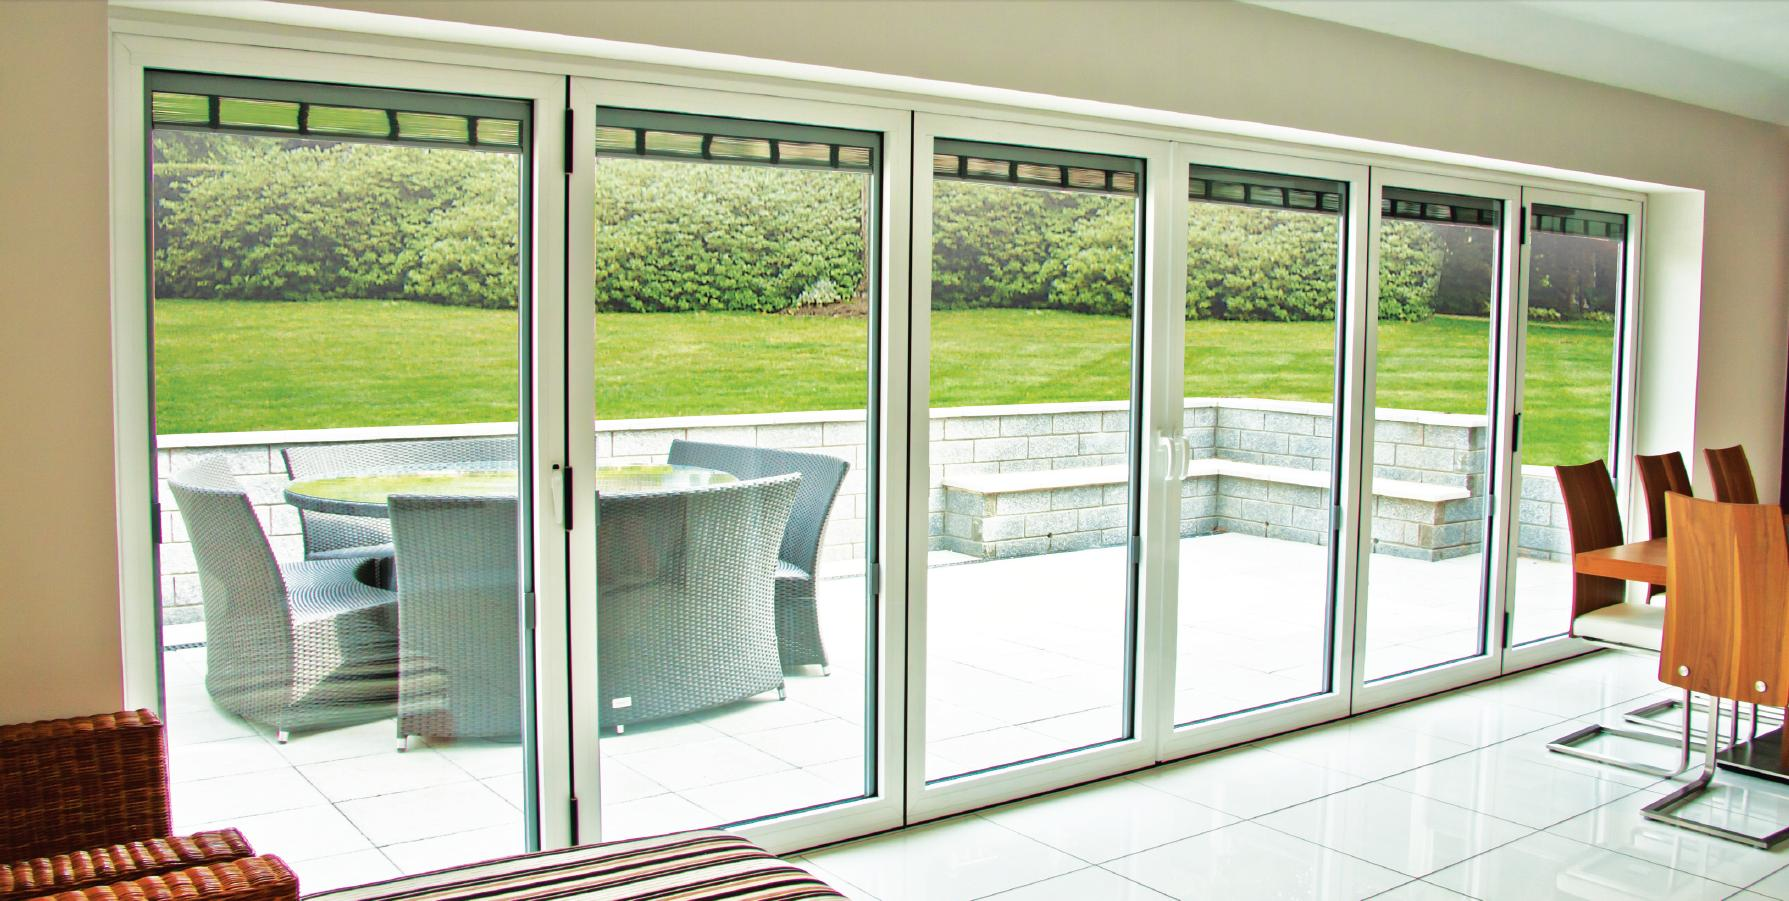 20 Folding door design ideas | Interior & Exterior Doors